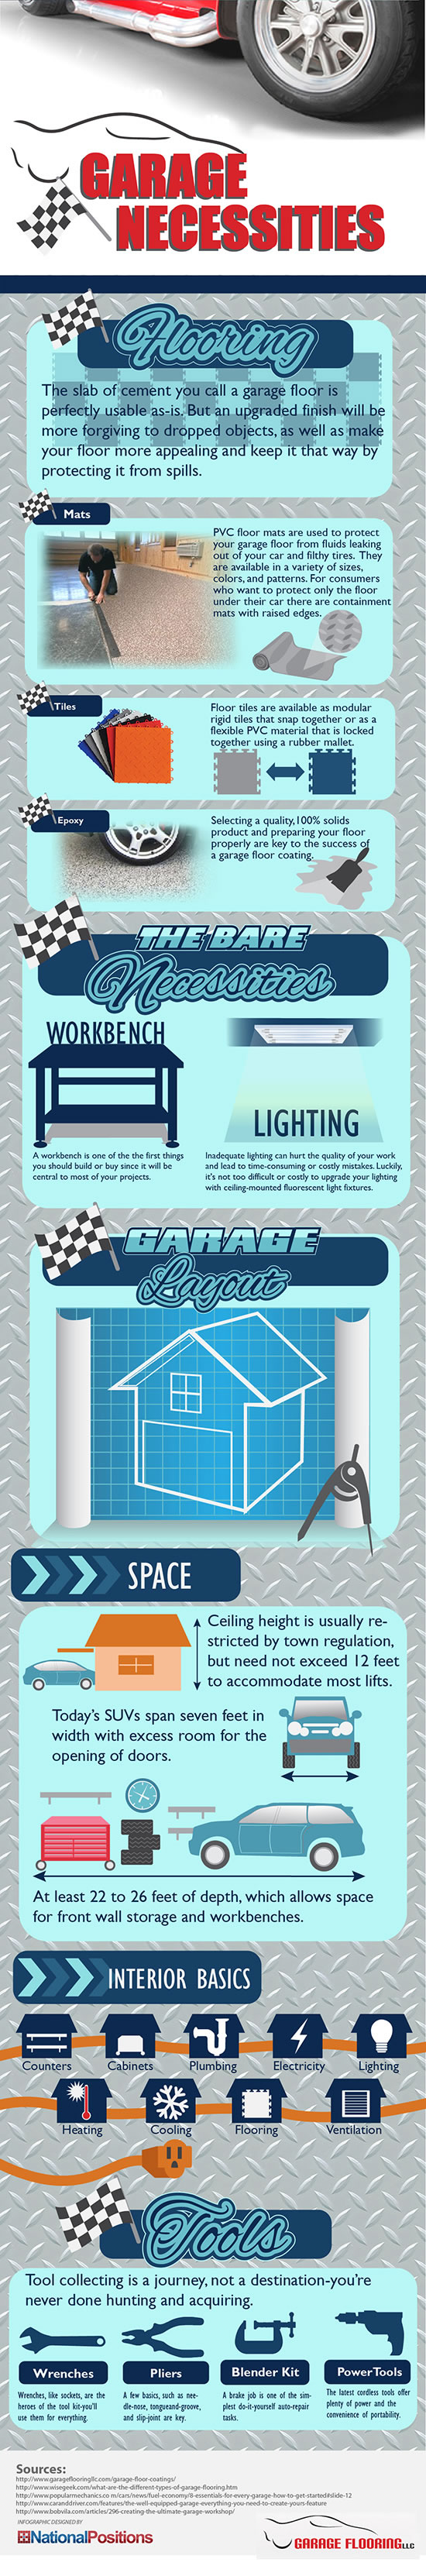 Improve Your Garage Appeal Infographic